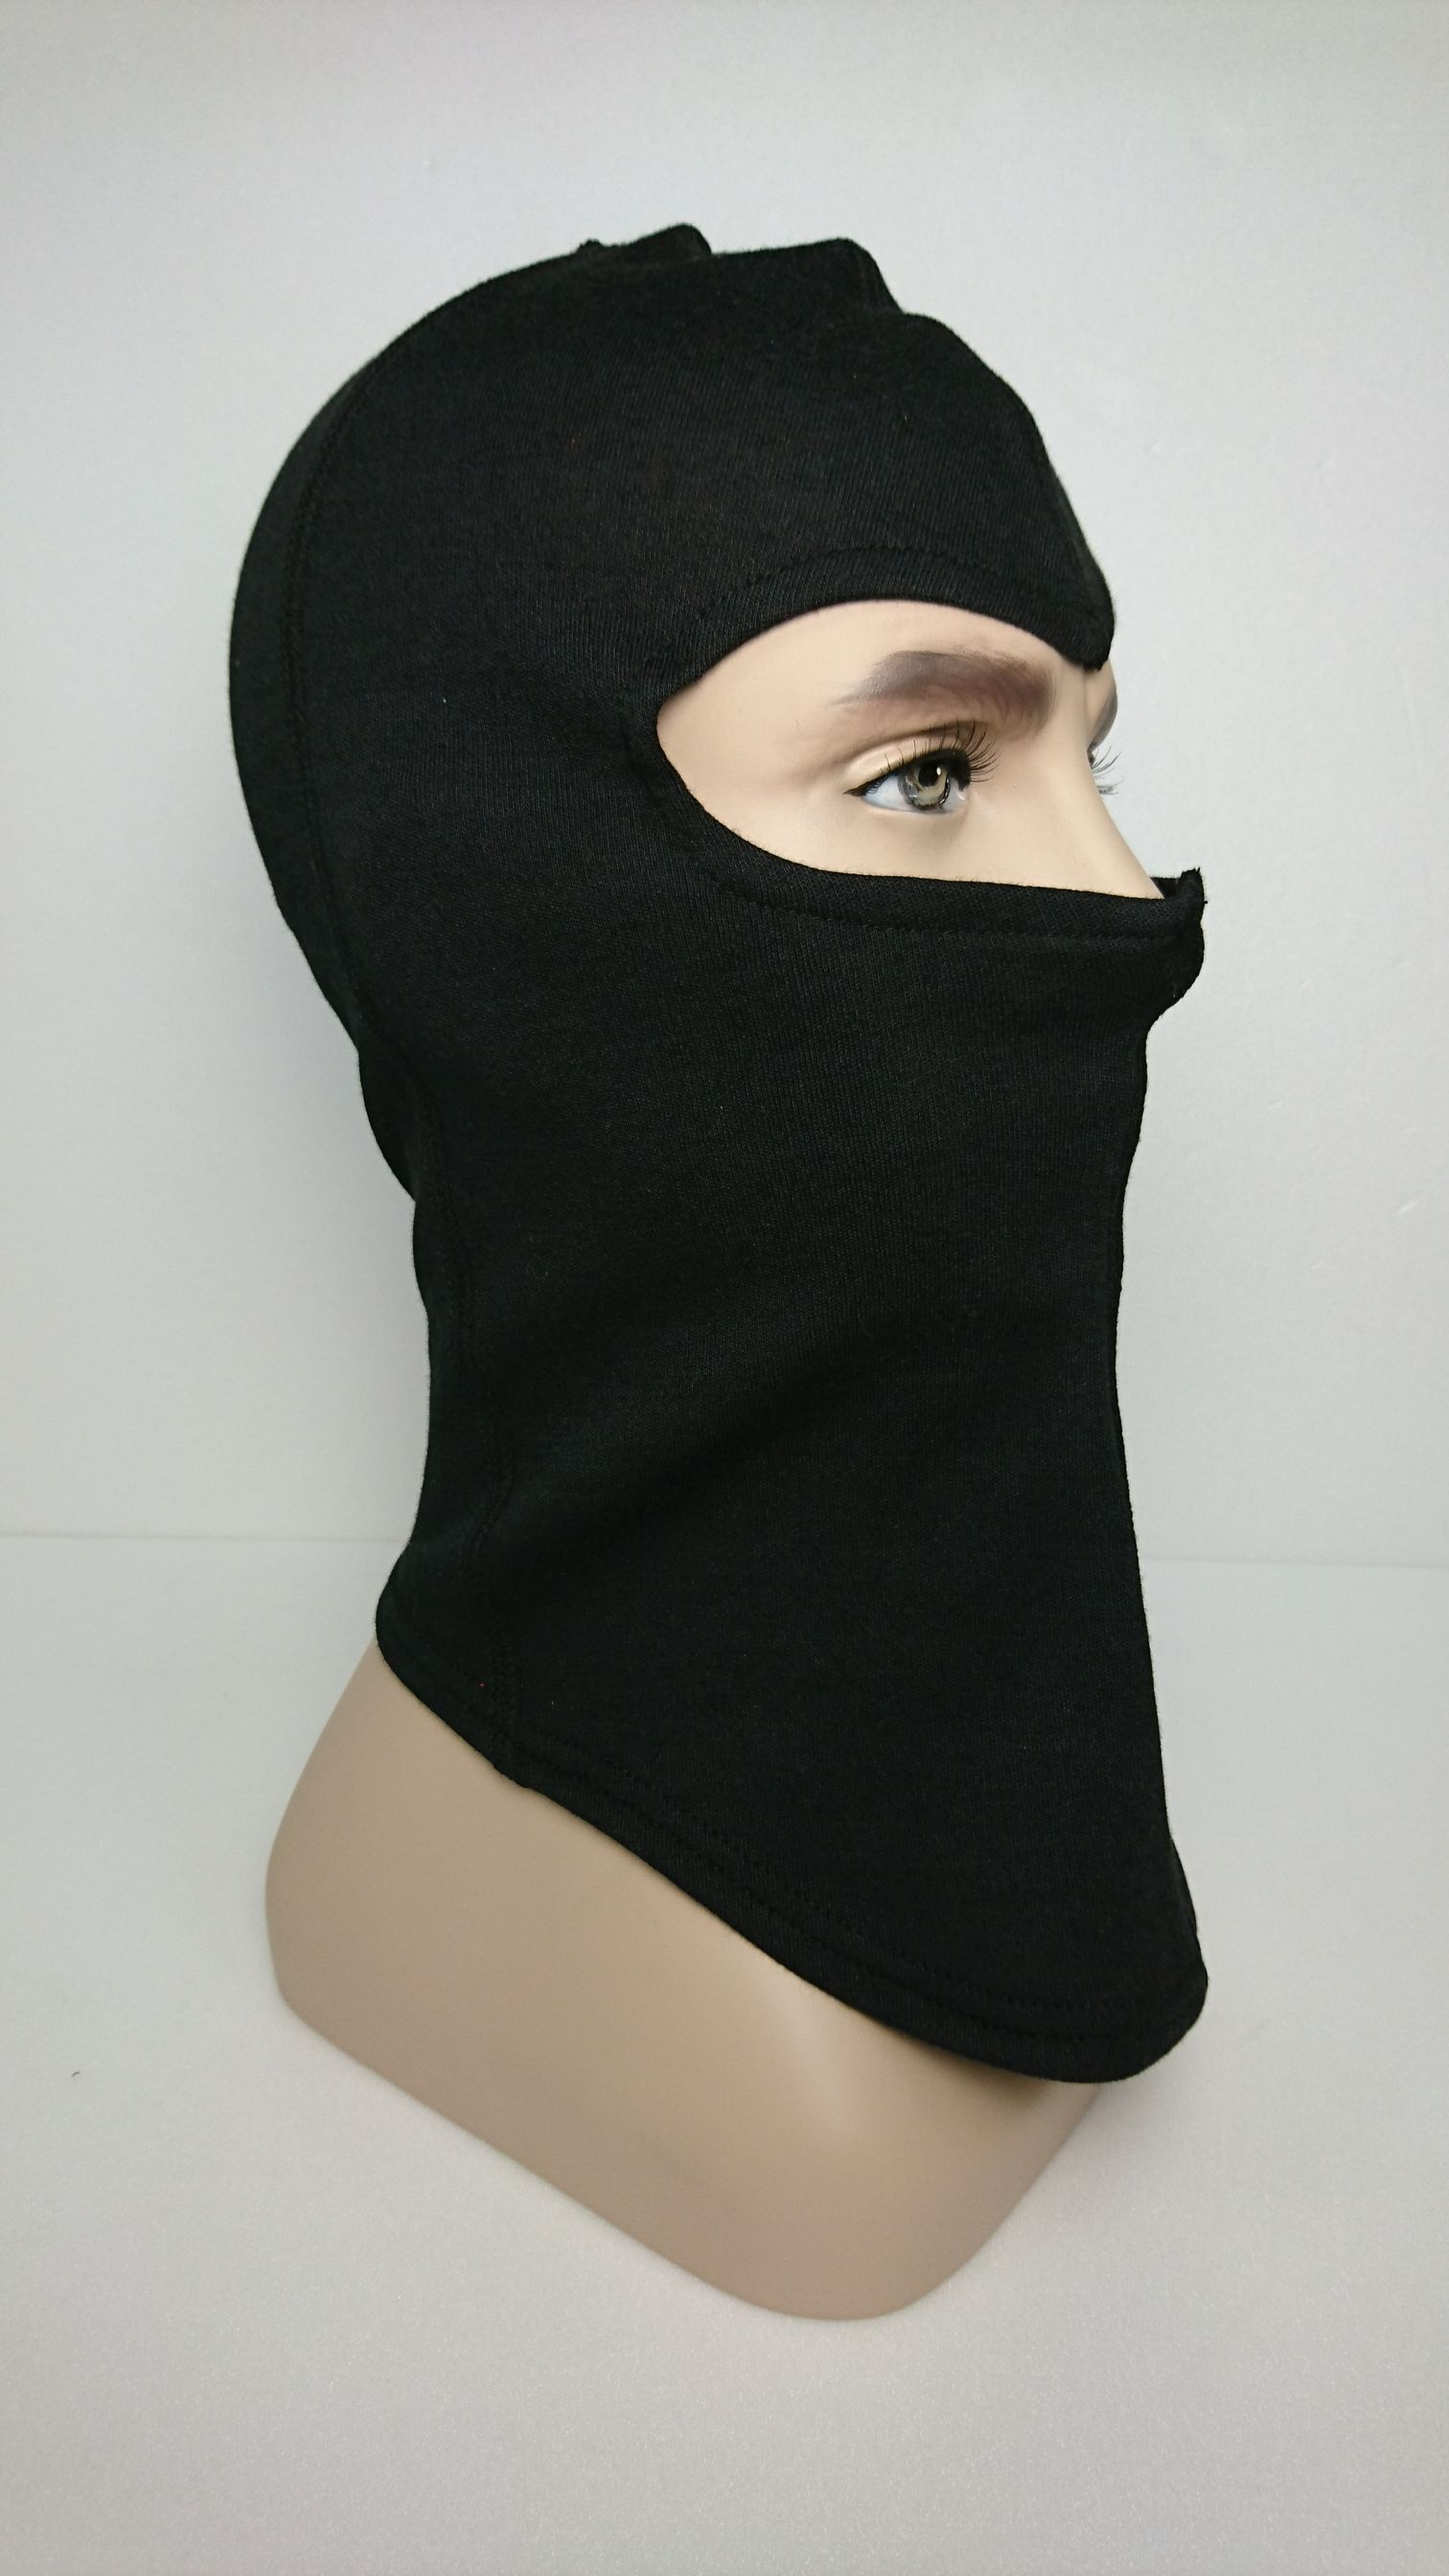 Nomex / FR Blending Balaclava for Tactical / Military / Police1